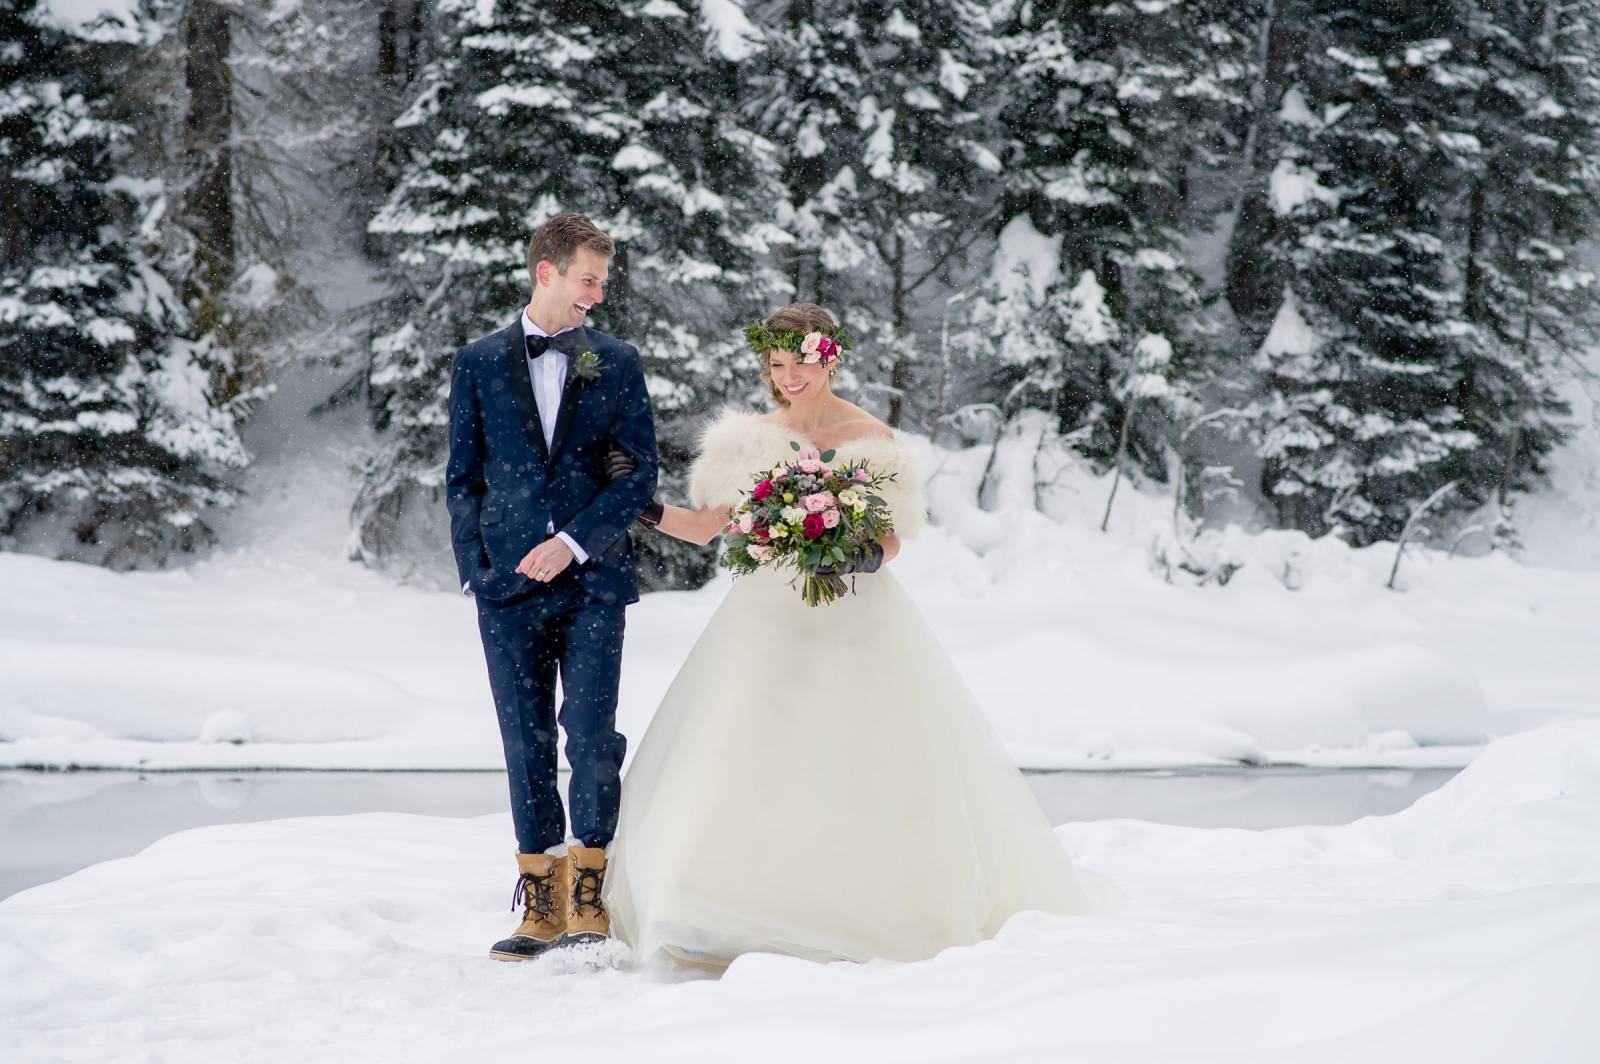 Winter wedding tips wedding tips if you are asking your wedding party to step outside for winter wedding photos then ask them to bring cute winter boots and thermal leggings with them to junglespirit Images